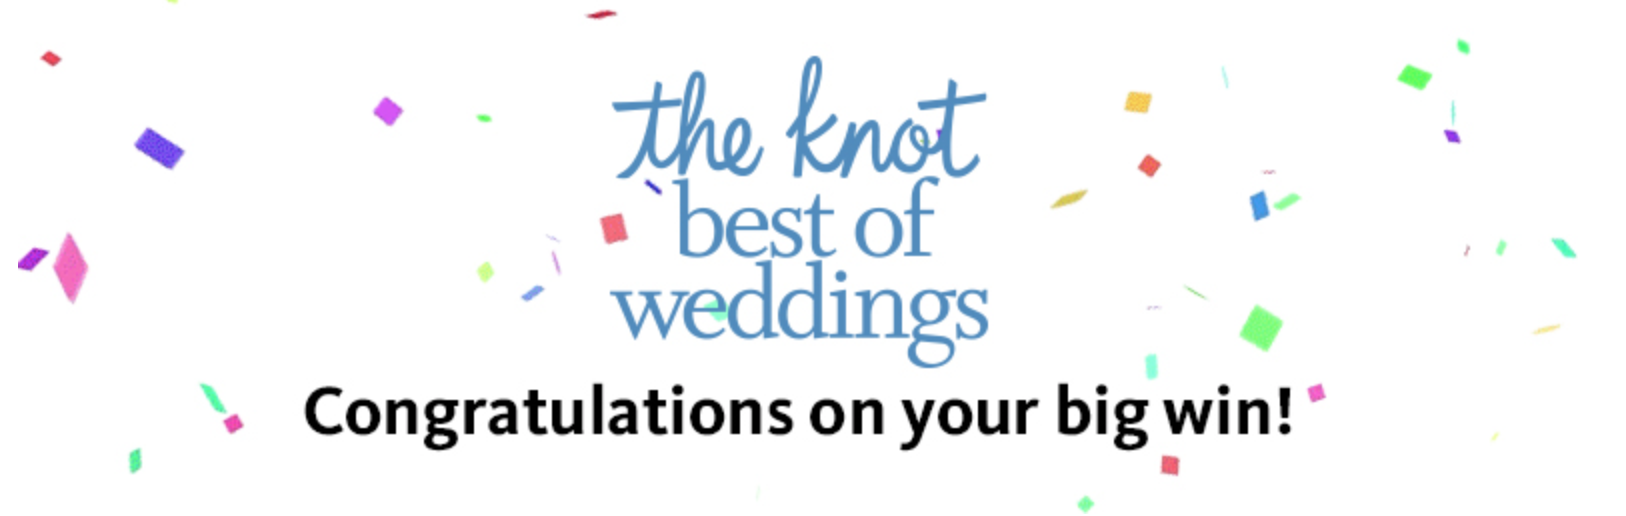 Wow Thank You The Knot